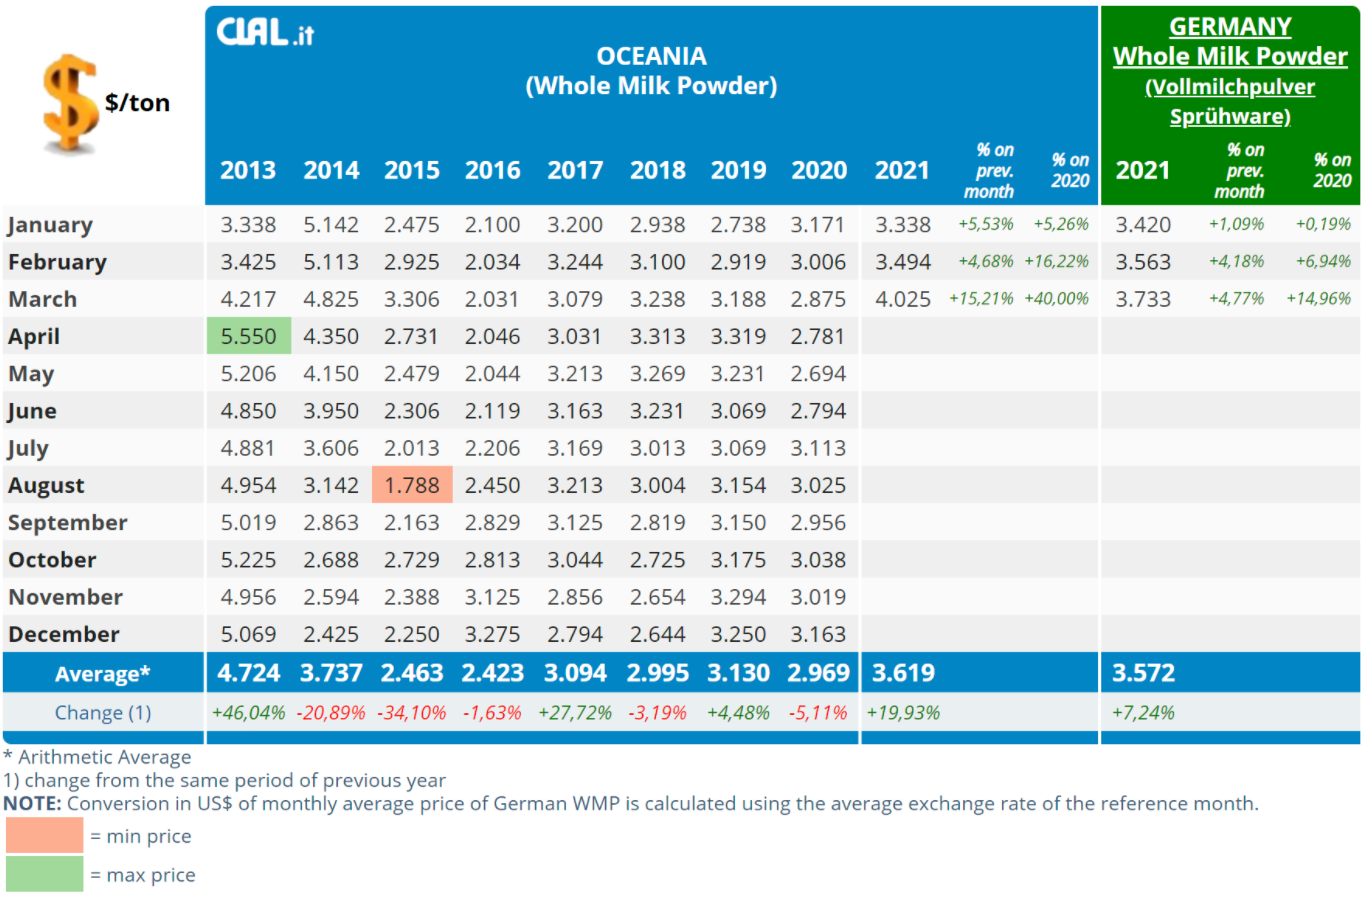 CLAL.it - WMP prices in Oceania and in Germany